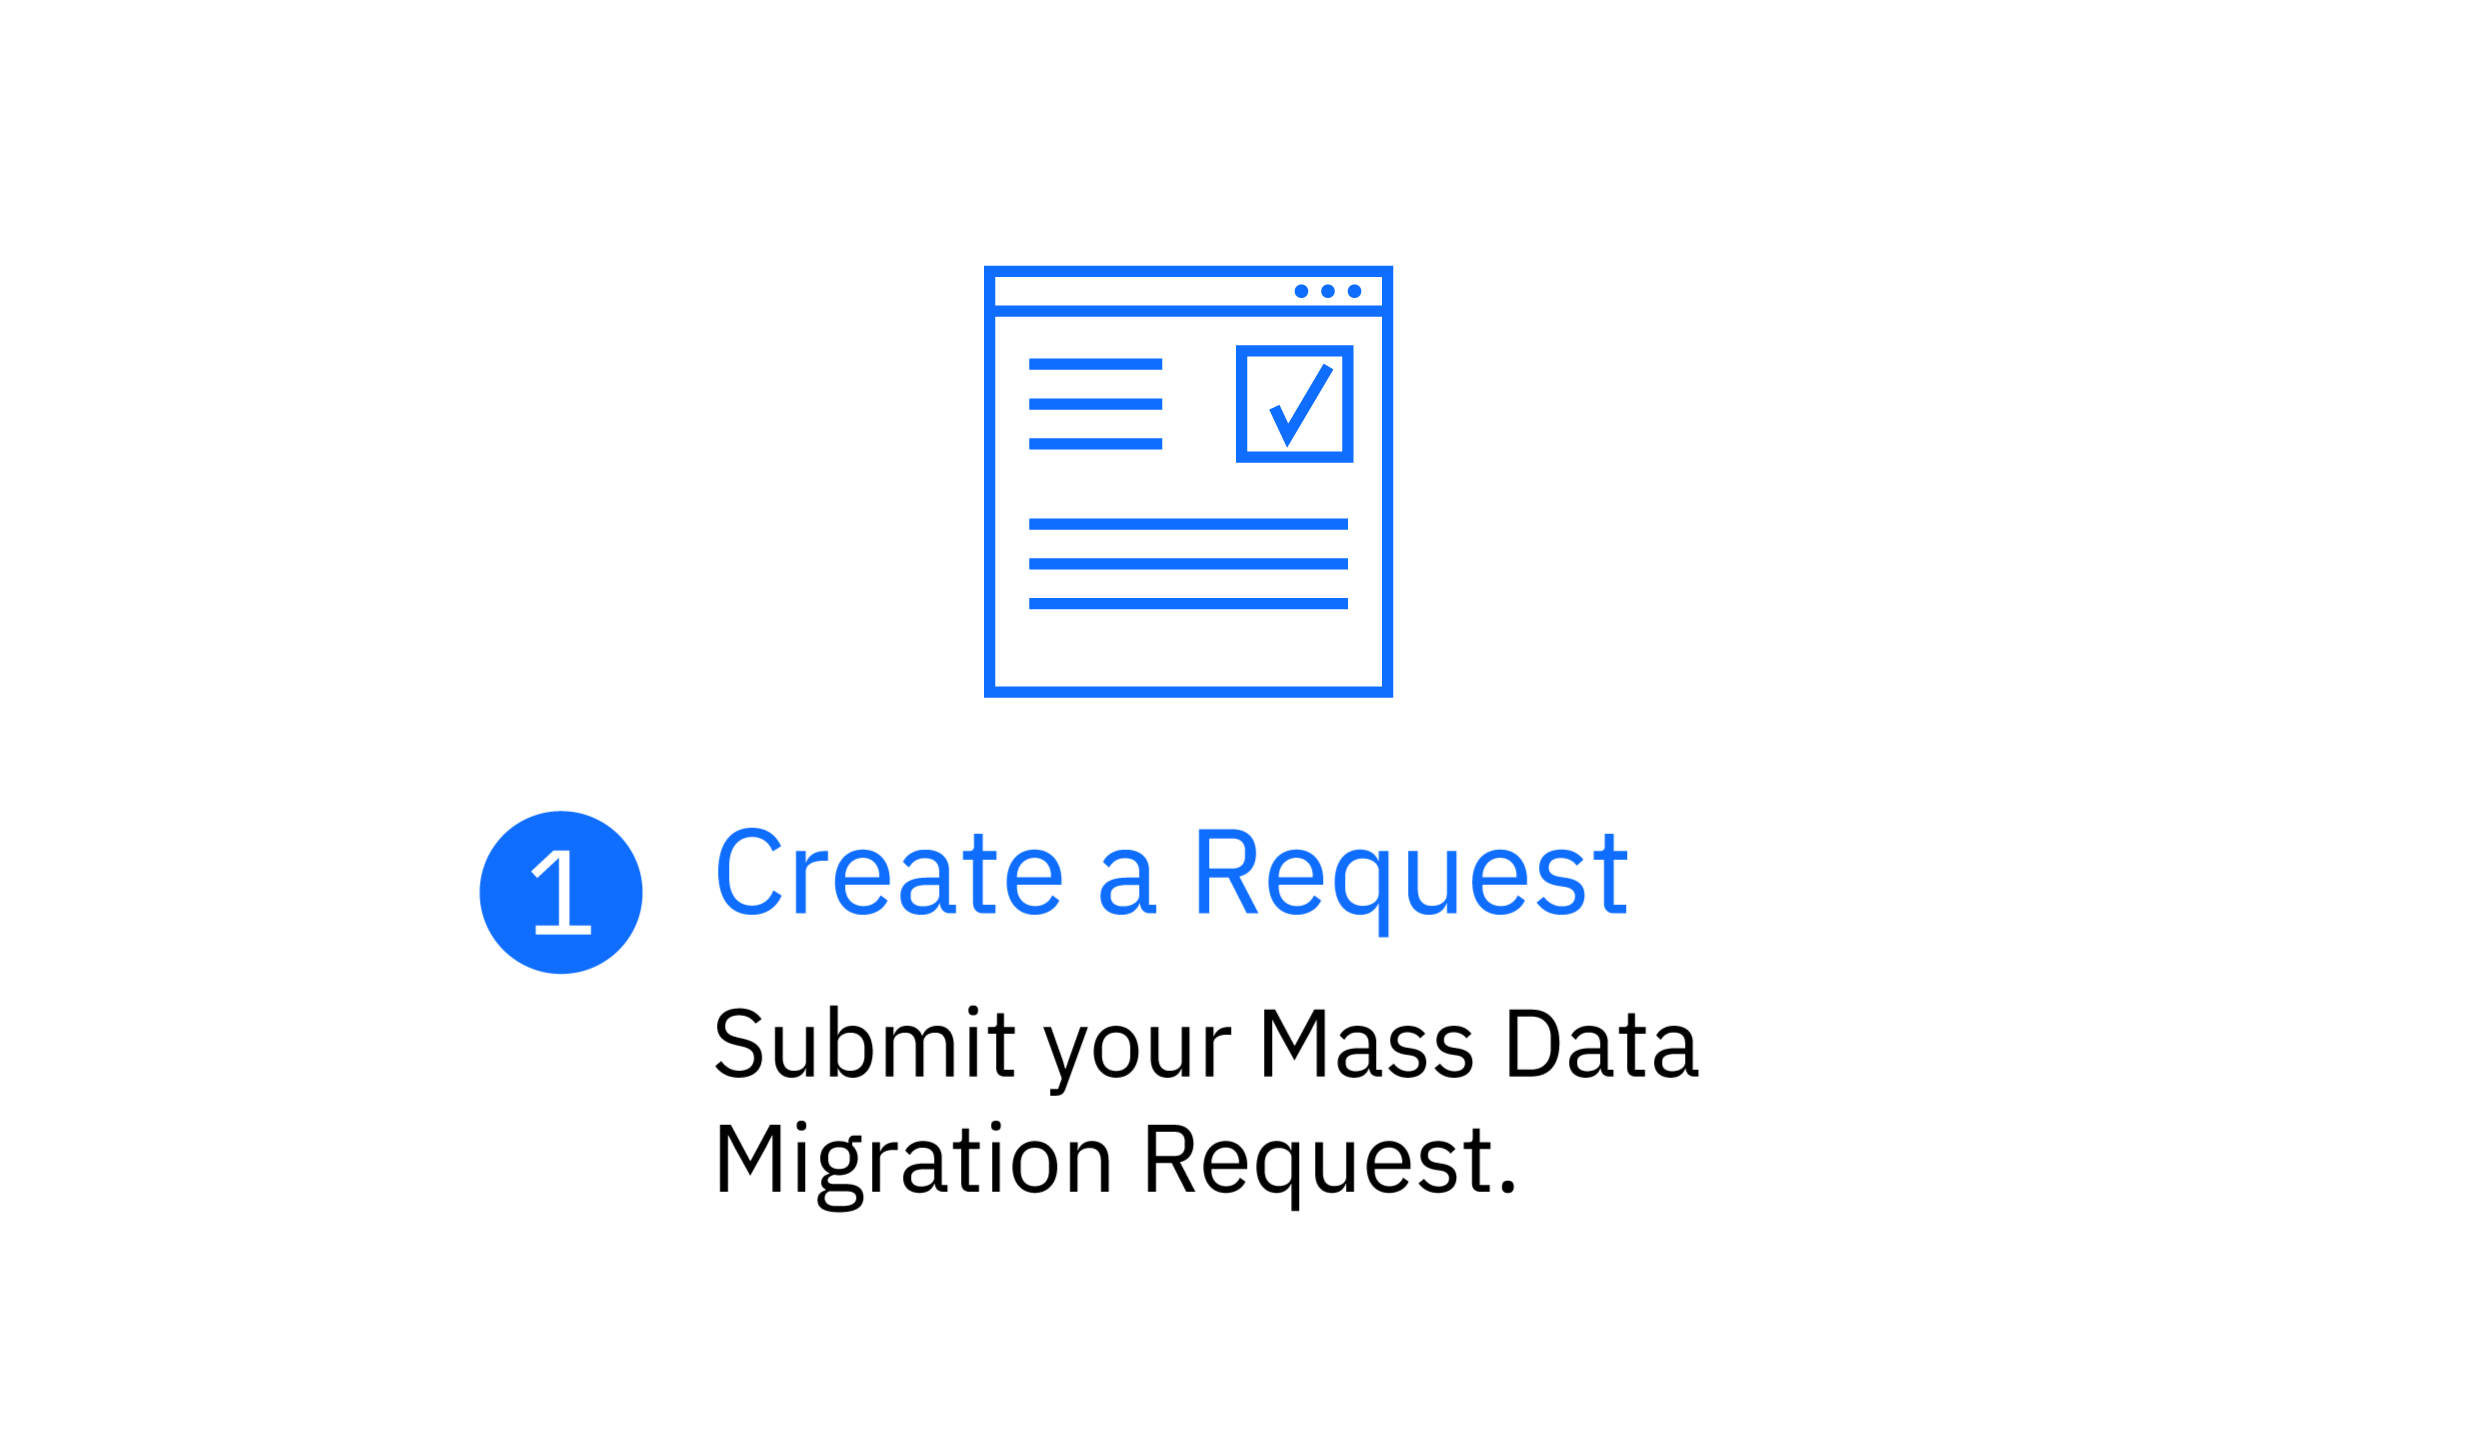 Step 1: Create a request